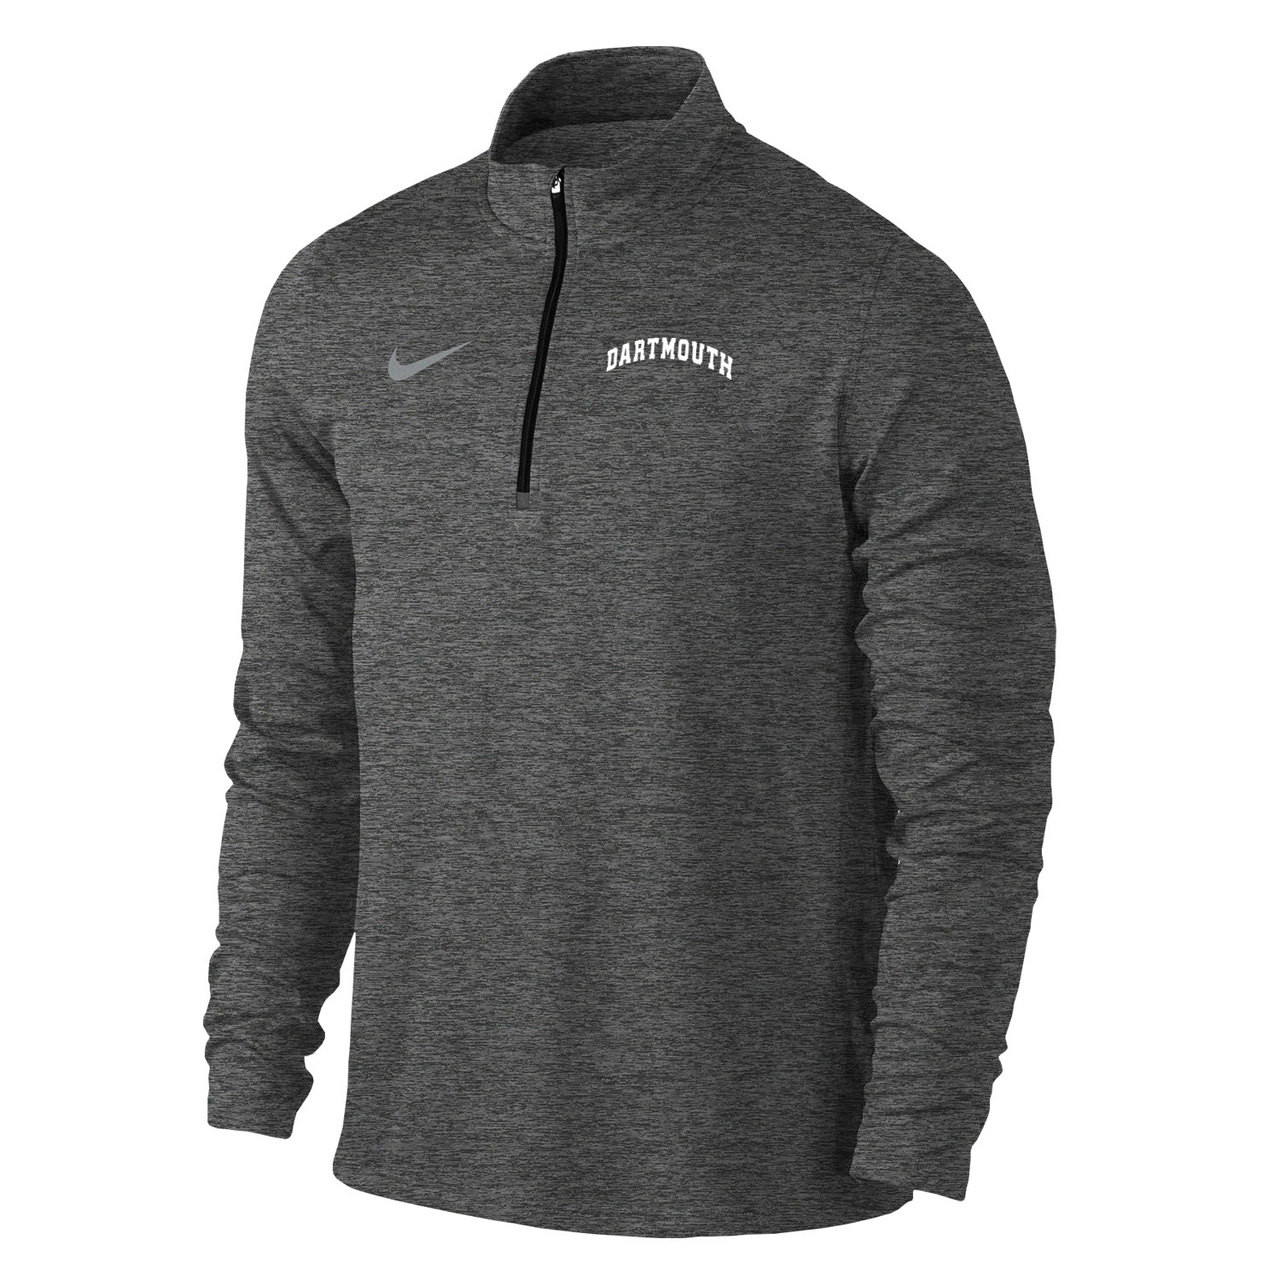 442efa88 Men's Nike grey 1/4 zip with grey Nike swoosh on the right and '